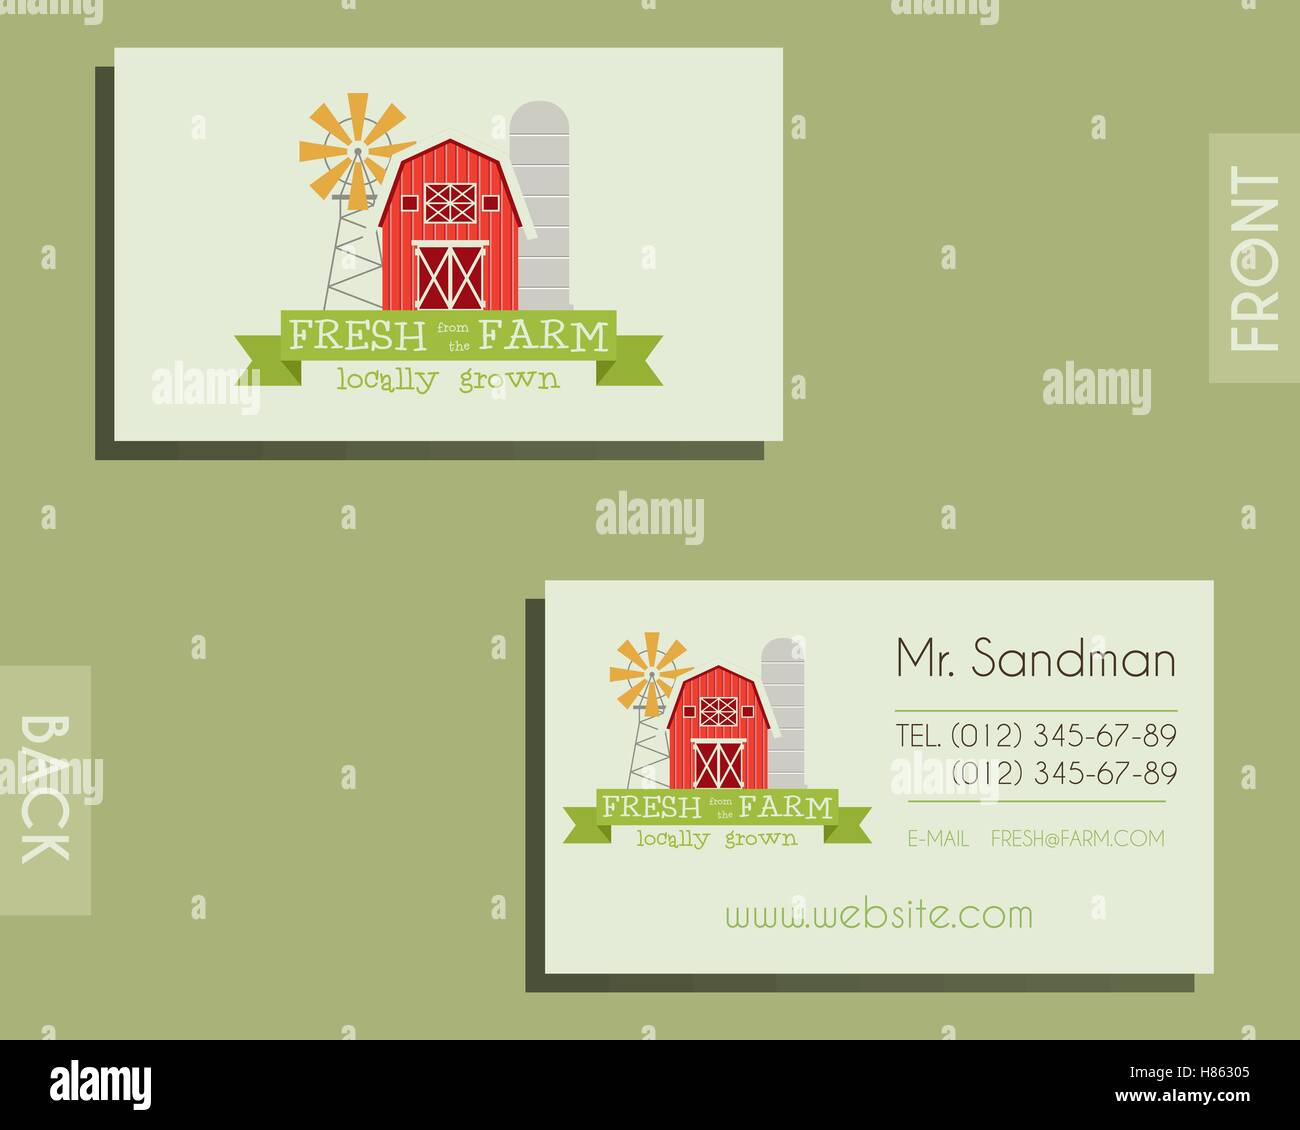 Eco organic visiting card template for natural shop farm eco organic visiting card template for natural shop farm products and other bio organic business ecology theme eco design vector illustration magicingreecefo Choice Image